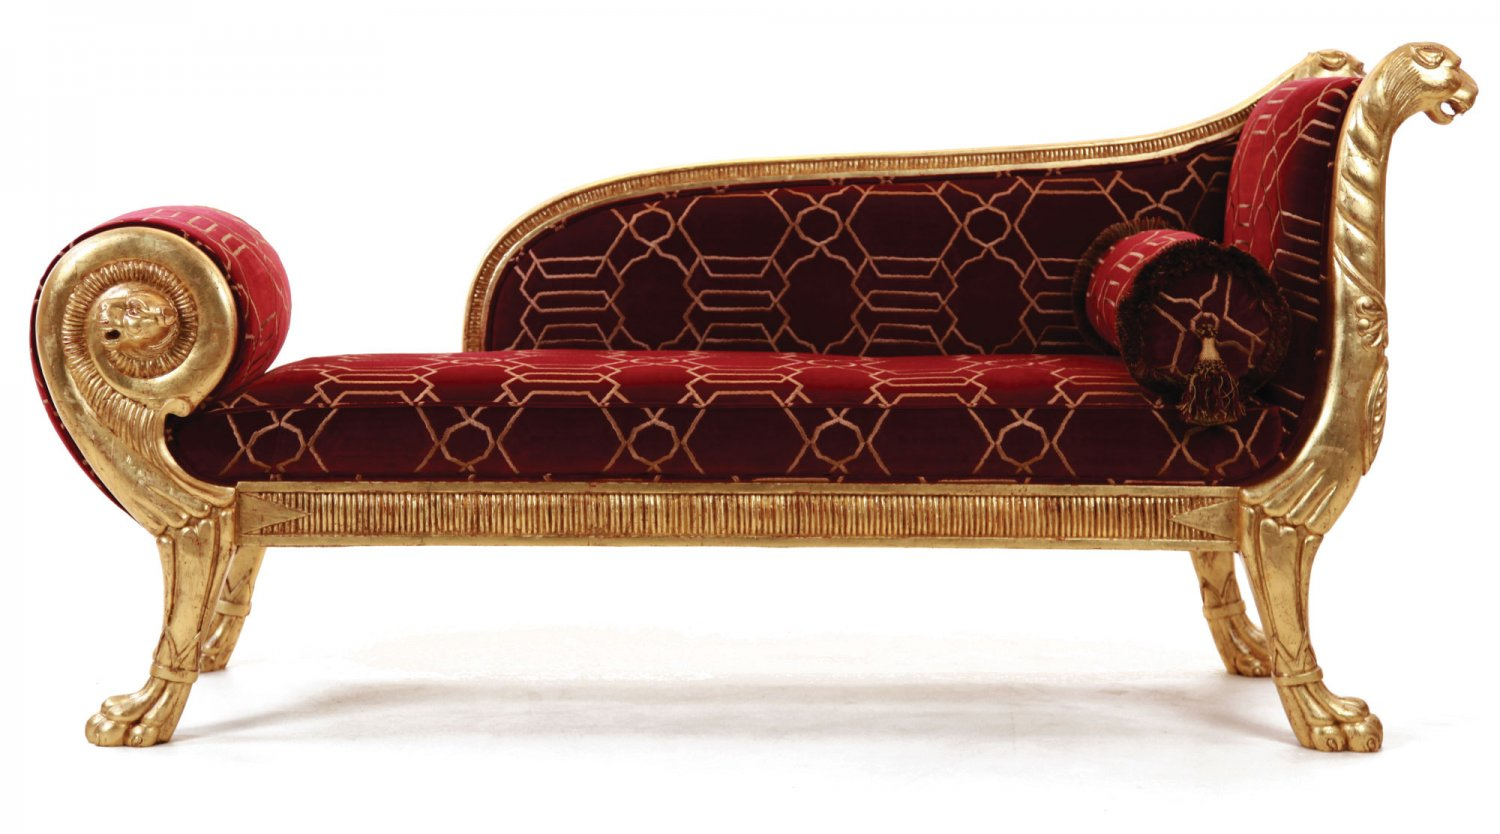 Gillows style chaise longue in red velvet